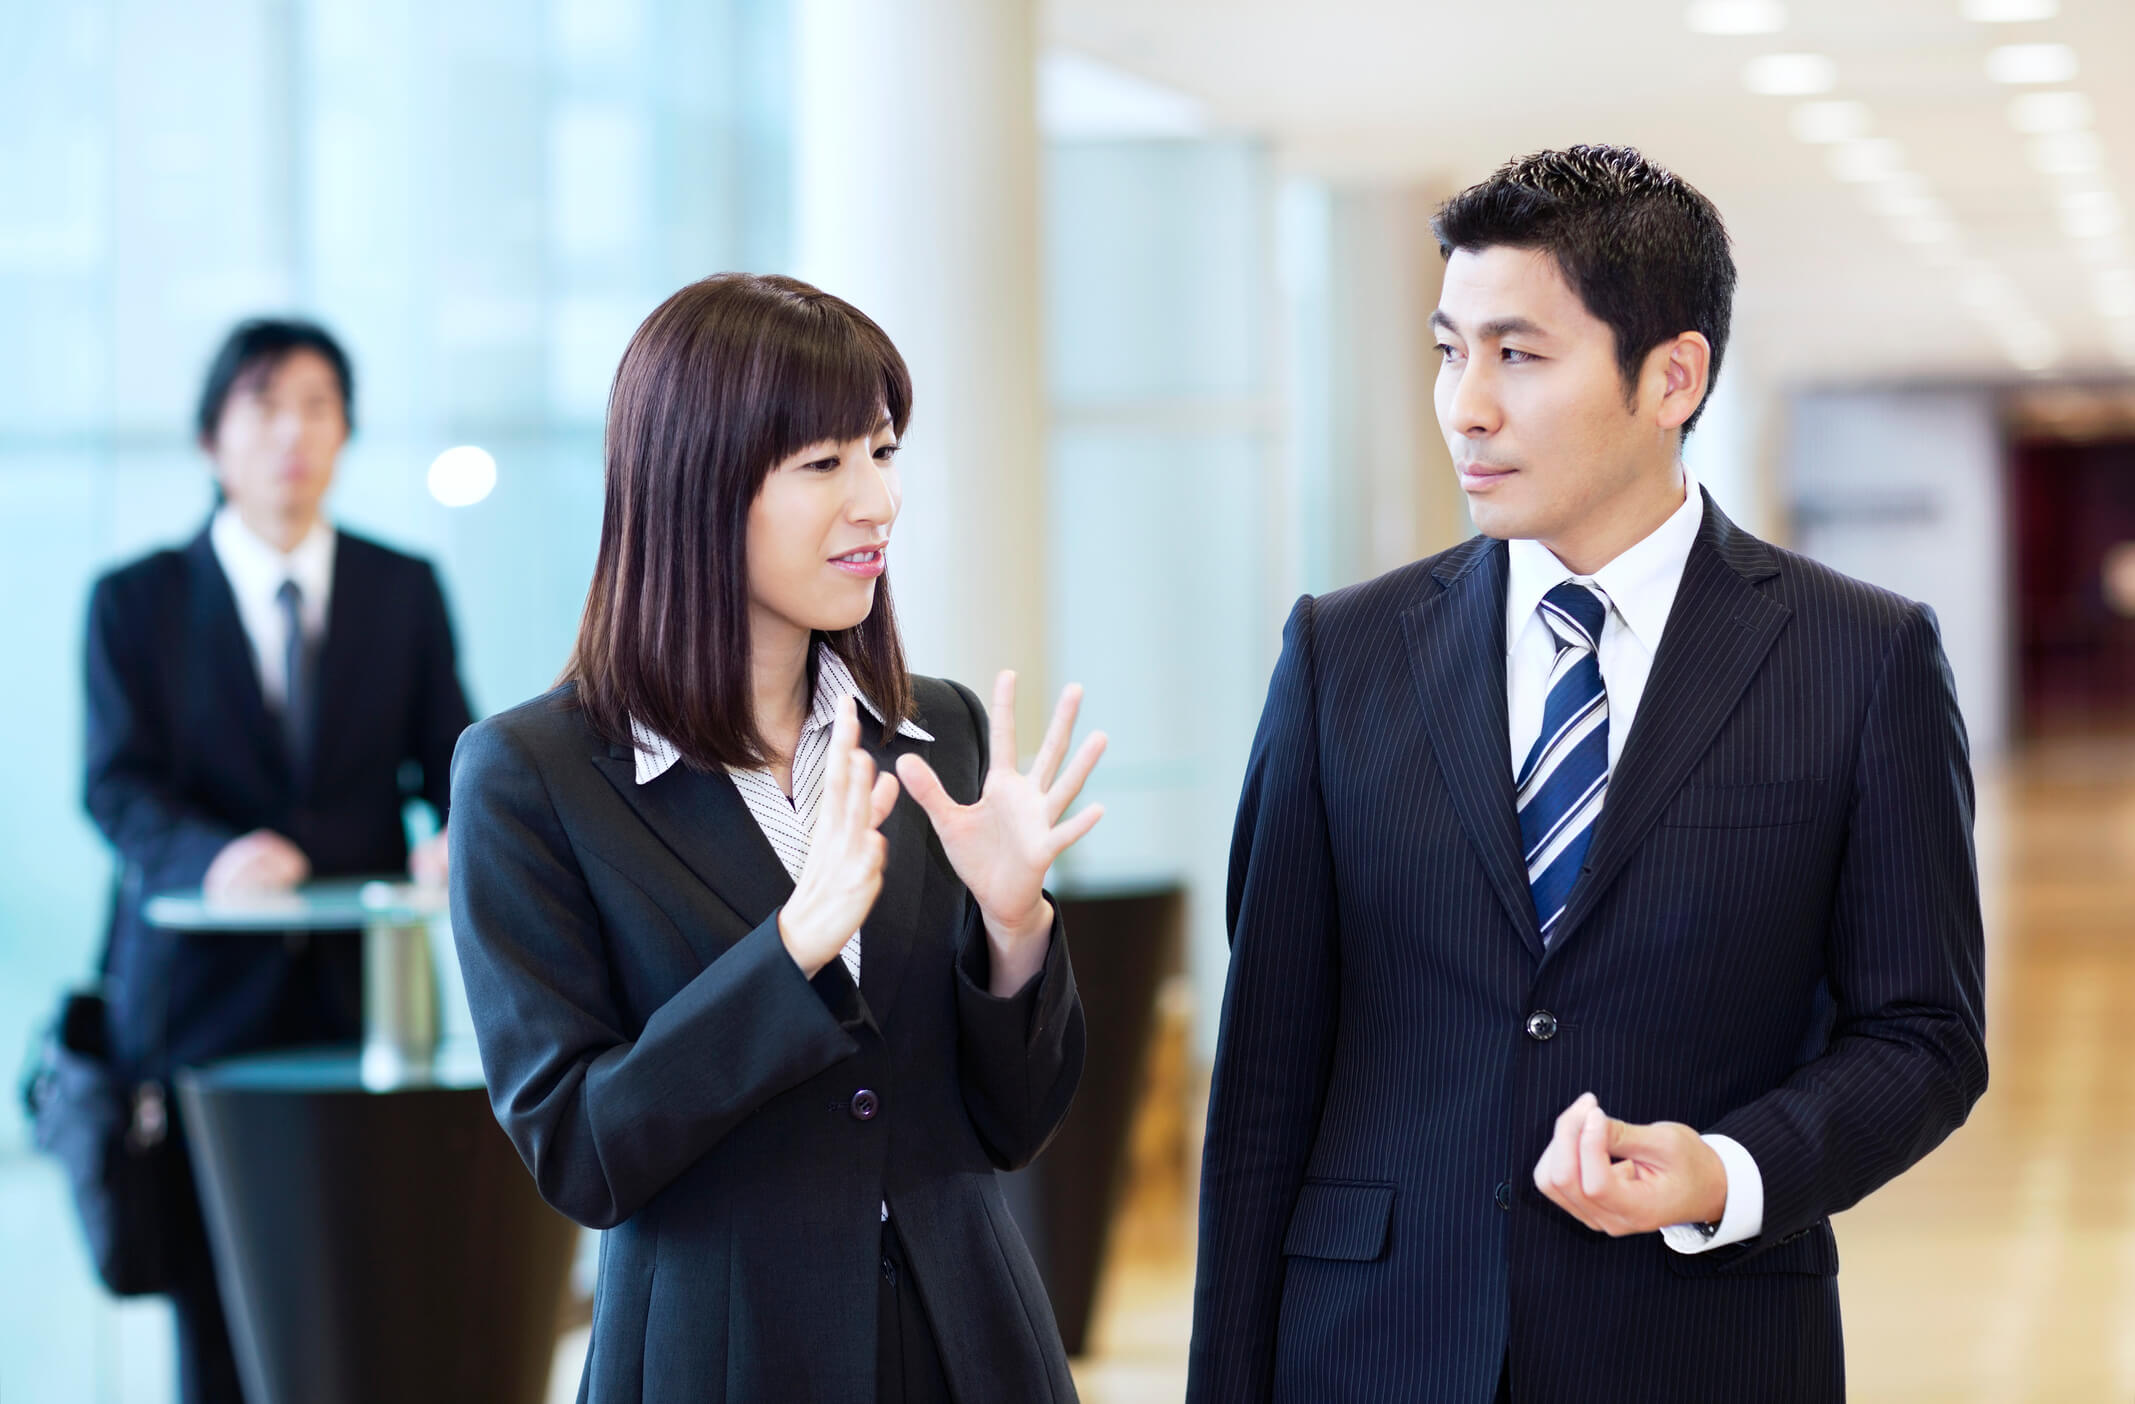 women in Japanese business